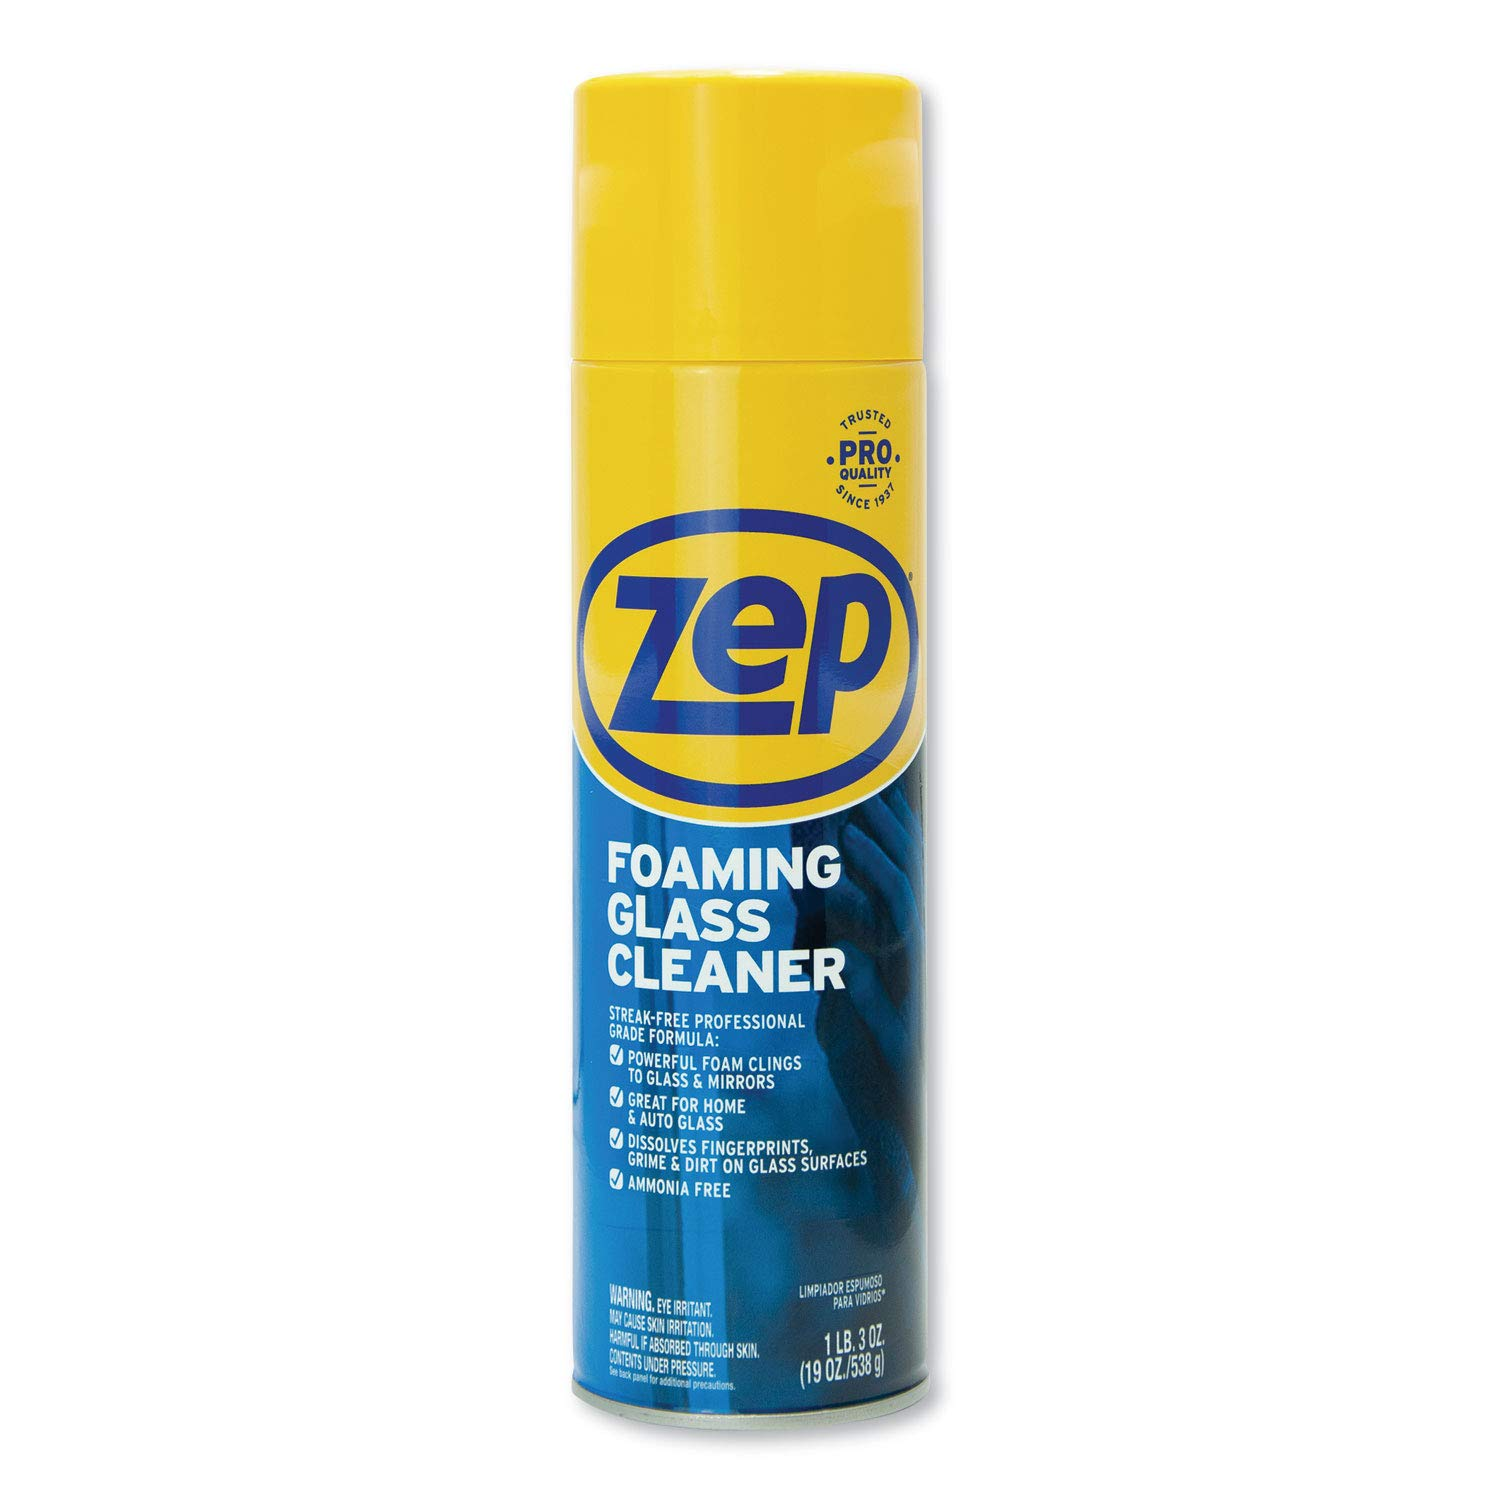 Zep Commercial Foaming Glass Cleaner, Pleasant Scent, 19 oz Bottle, 12/Carton by Zep Commercial